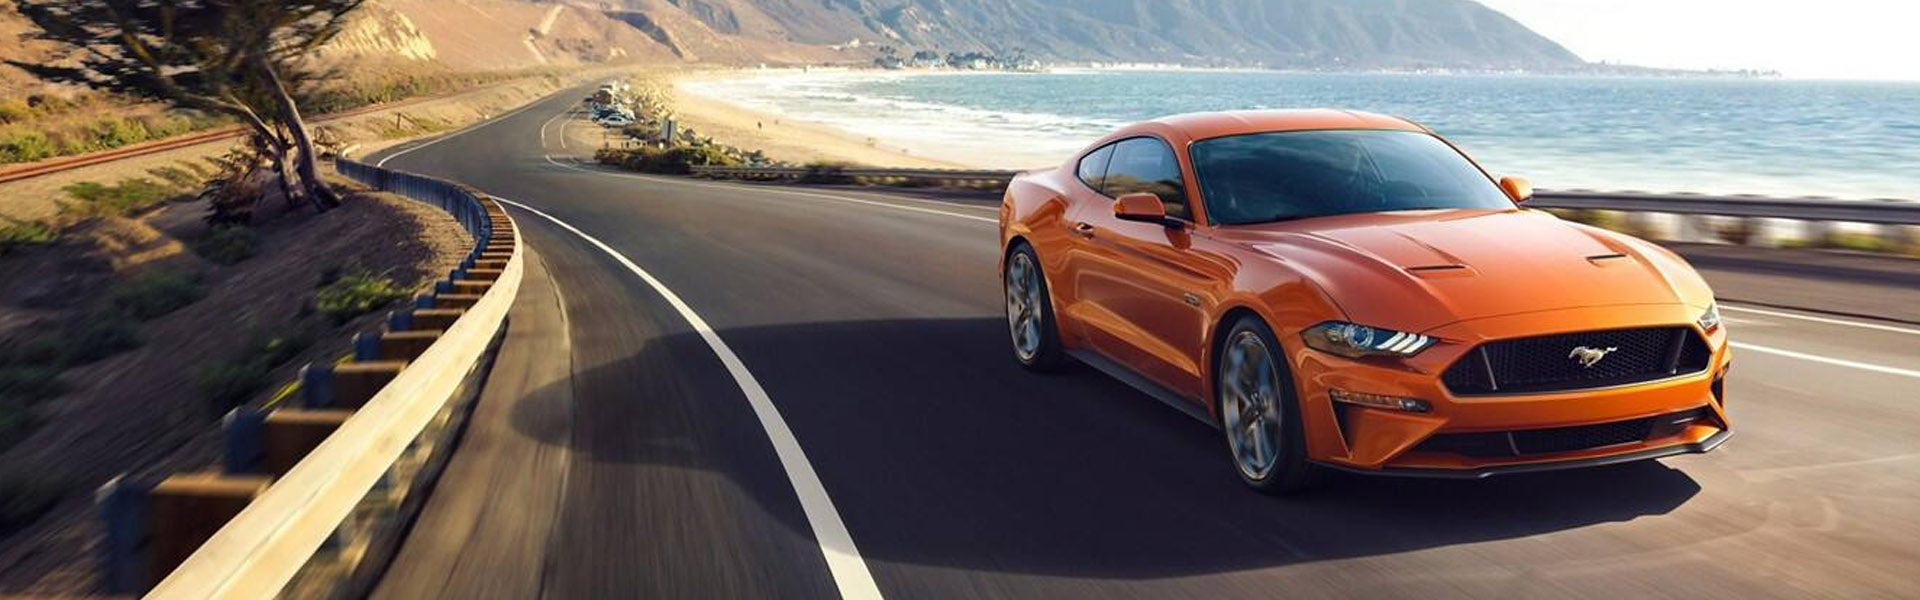 2019 Mustang Orange Fury Metallic Tri-coat.